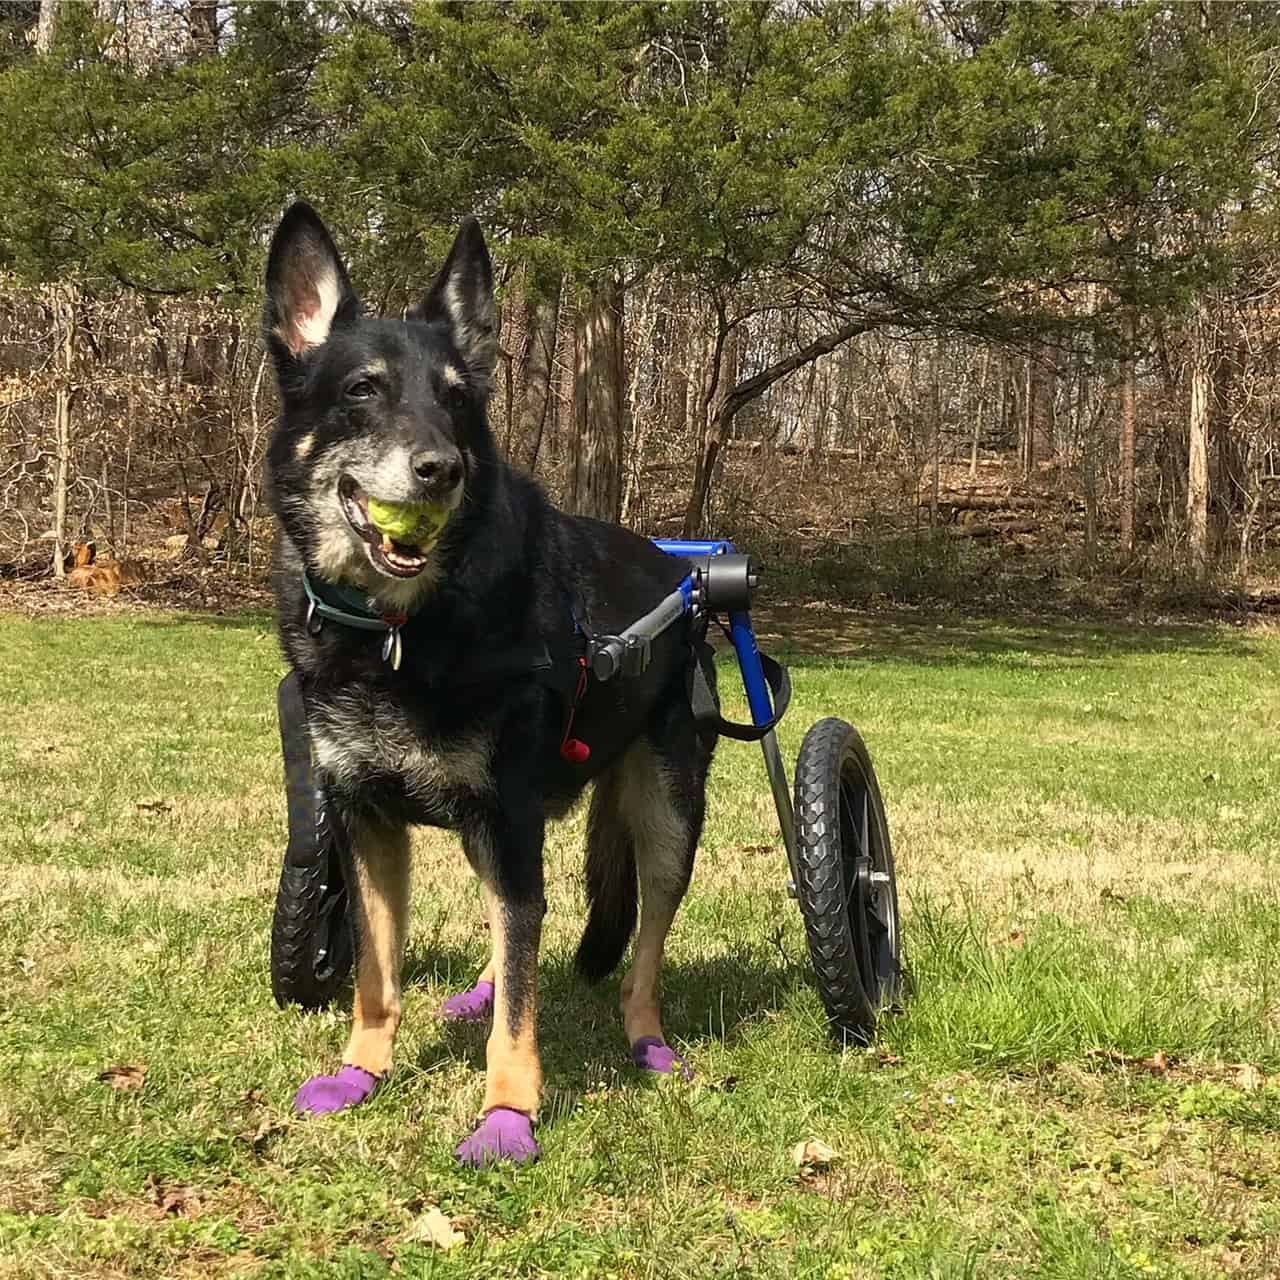 Buster the German Shepherd Dog in his wheelchair in the grass